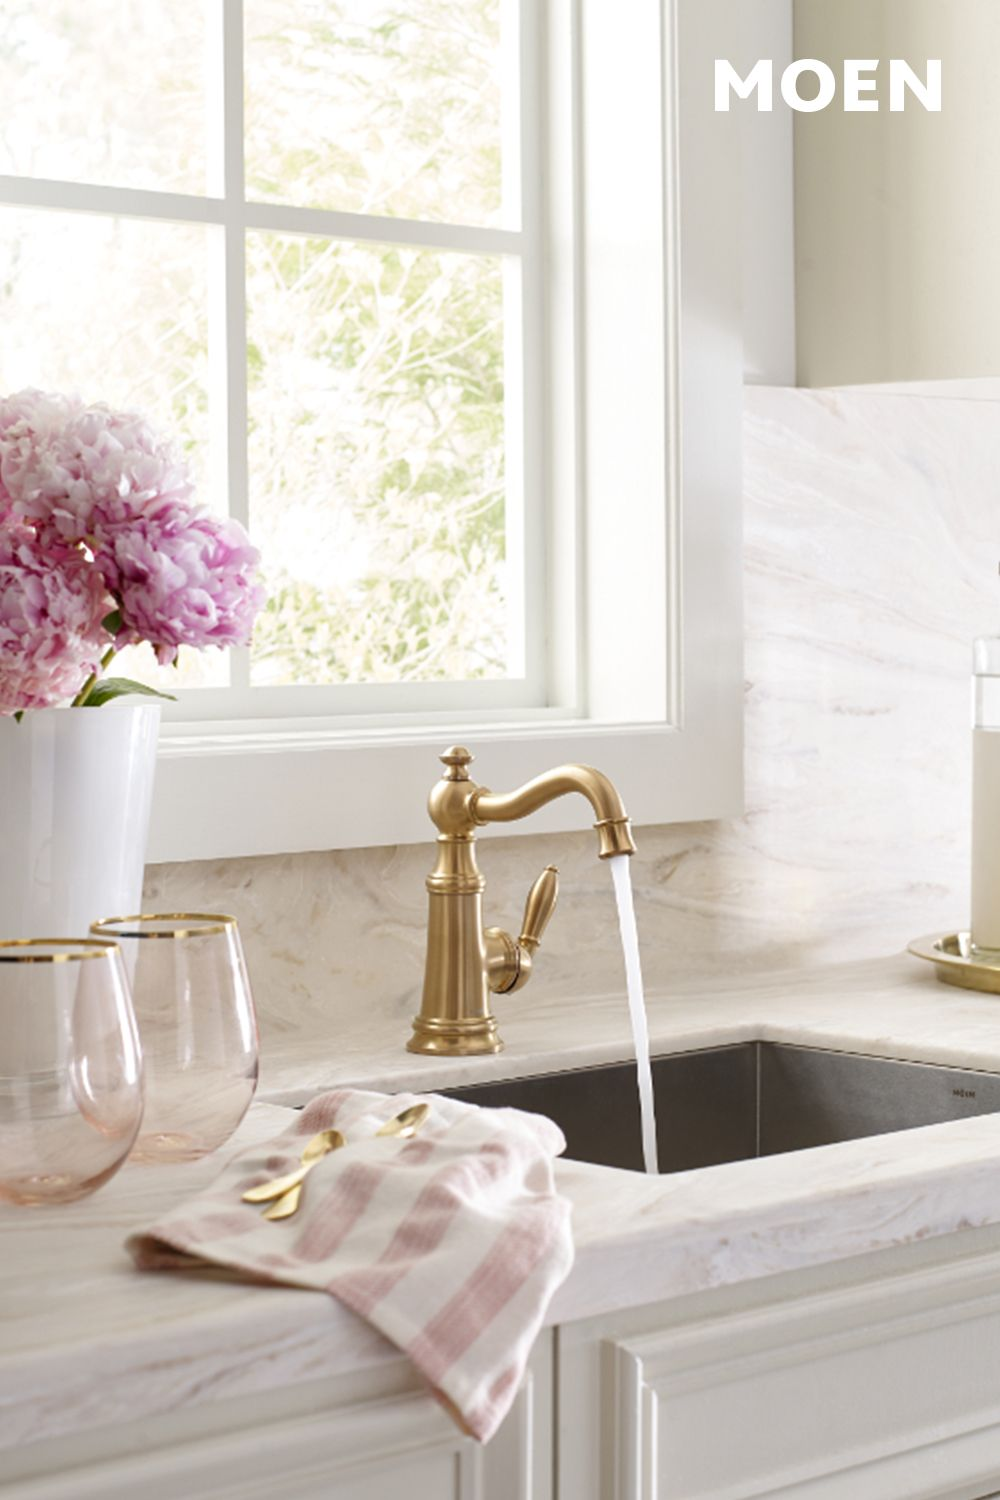 8 Best Weymouth Brushed Gold Kitchen Ideas Gold Kitchen High Arc Kitchen Faucet Brushed Gold